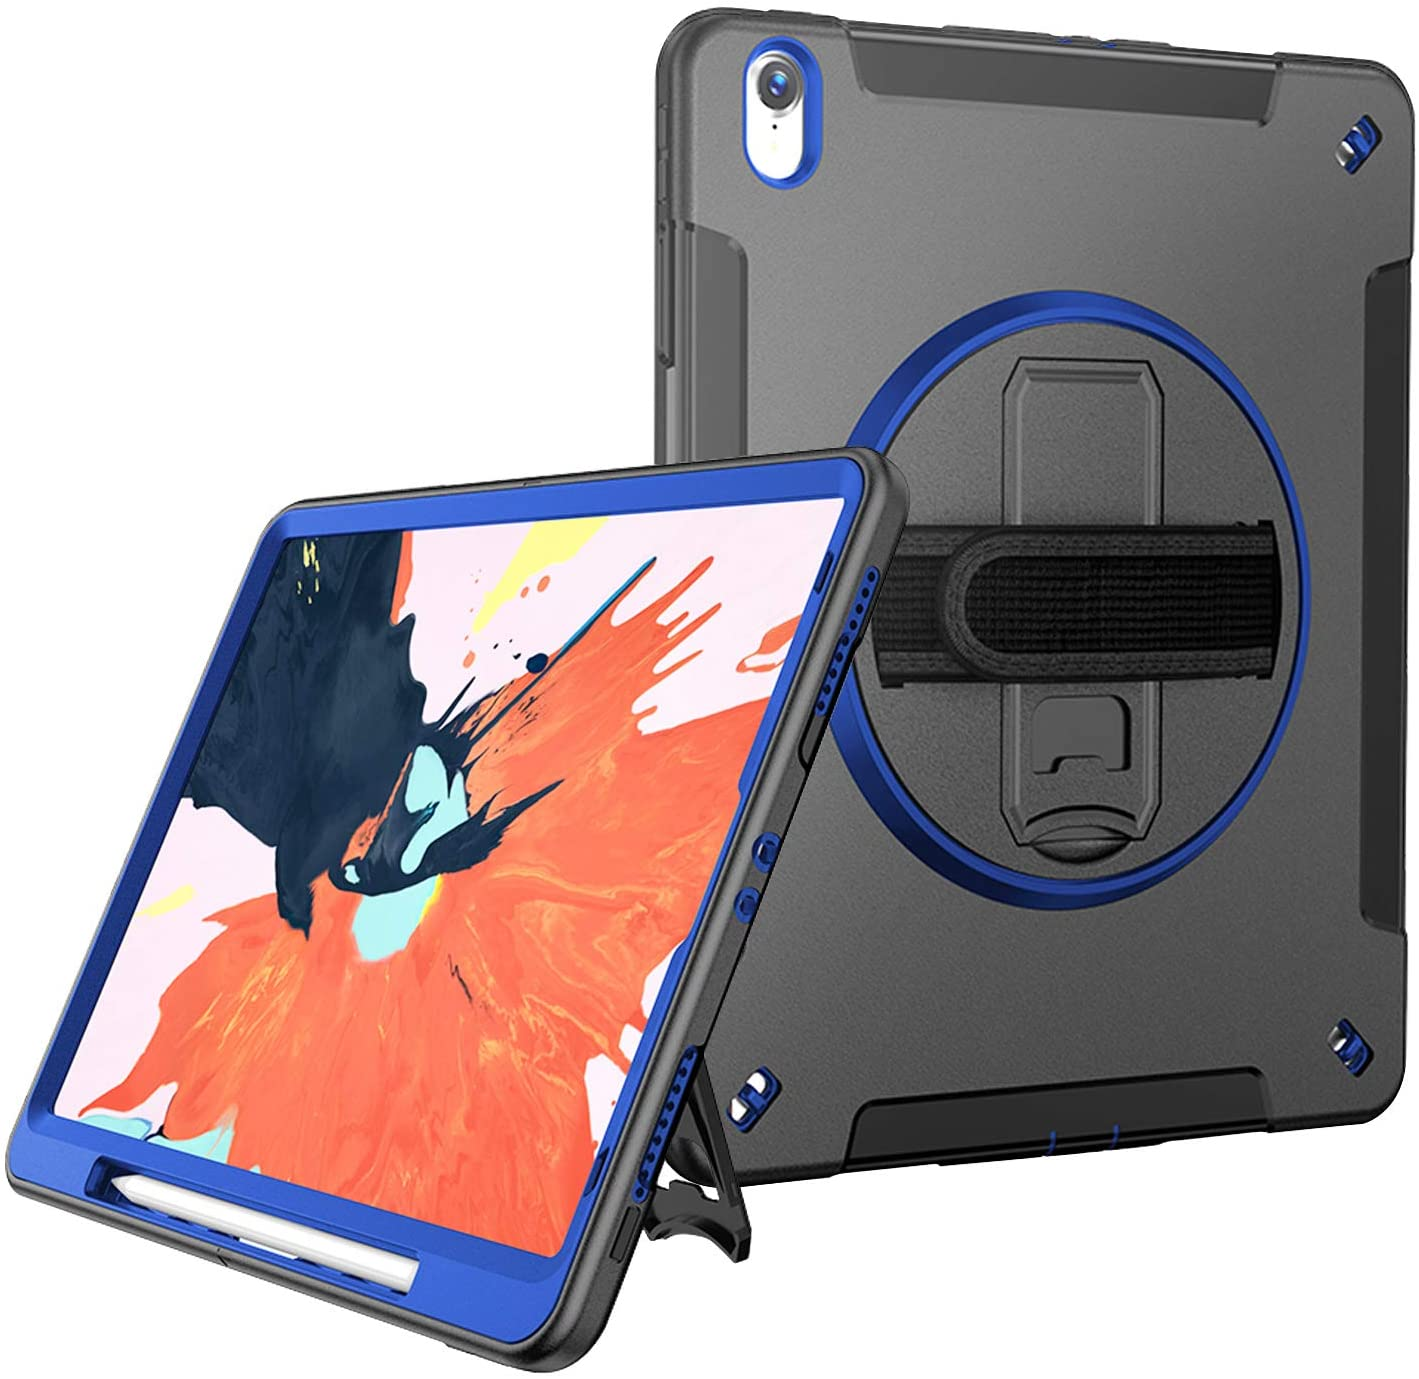 STLDM iPad Pro 12.9 Case 2018 with Pencil Holder Support Apple Pencil Wireless Charging,Rugged Protective Case with Rotatable Kickstand/Handle Strap Case for iPad Pro 12.9 inch 3rd Generation-Blue